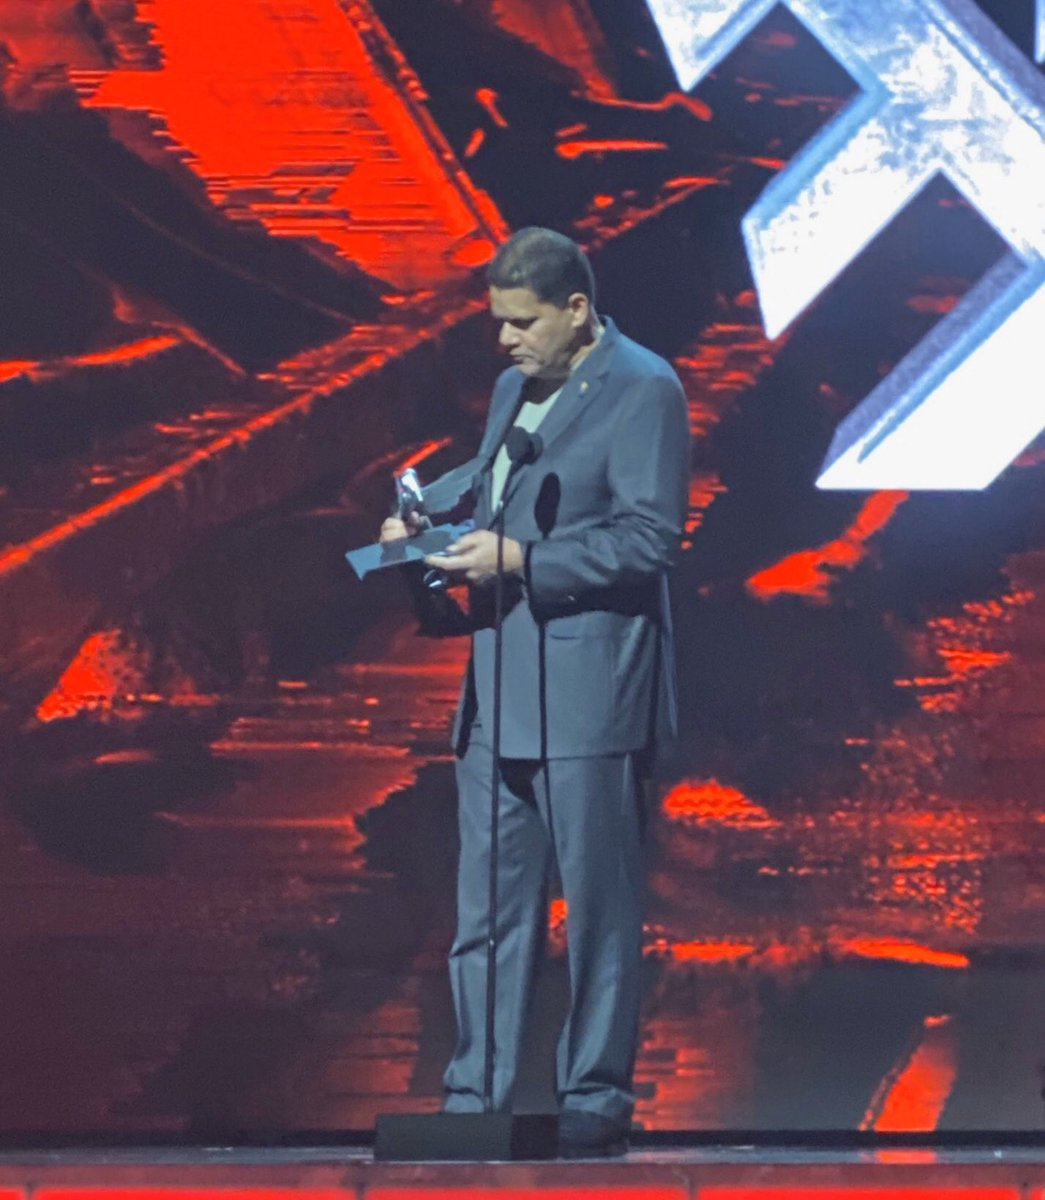 """#TheGameAwards2019   An honor to announce the winning Indie Game. All developers started as """"indie.""""  The future of gaming is in their hands! <br>http://pic.twitter.com/g8k9gH4TH2"""